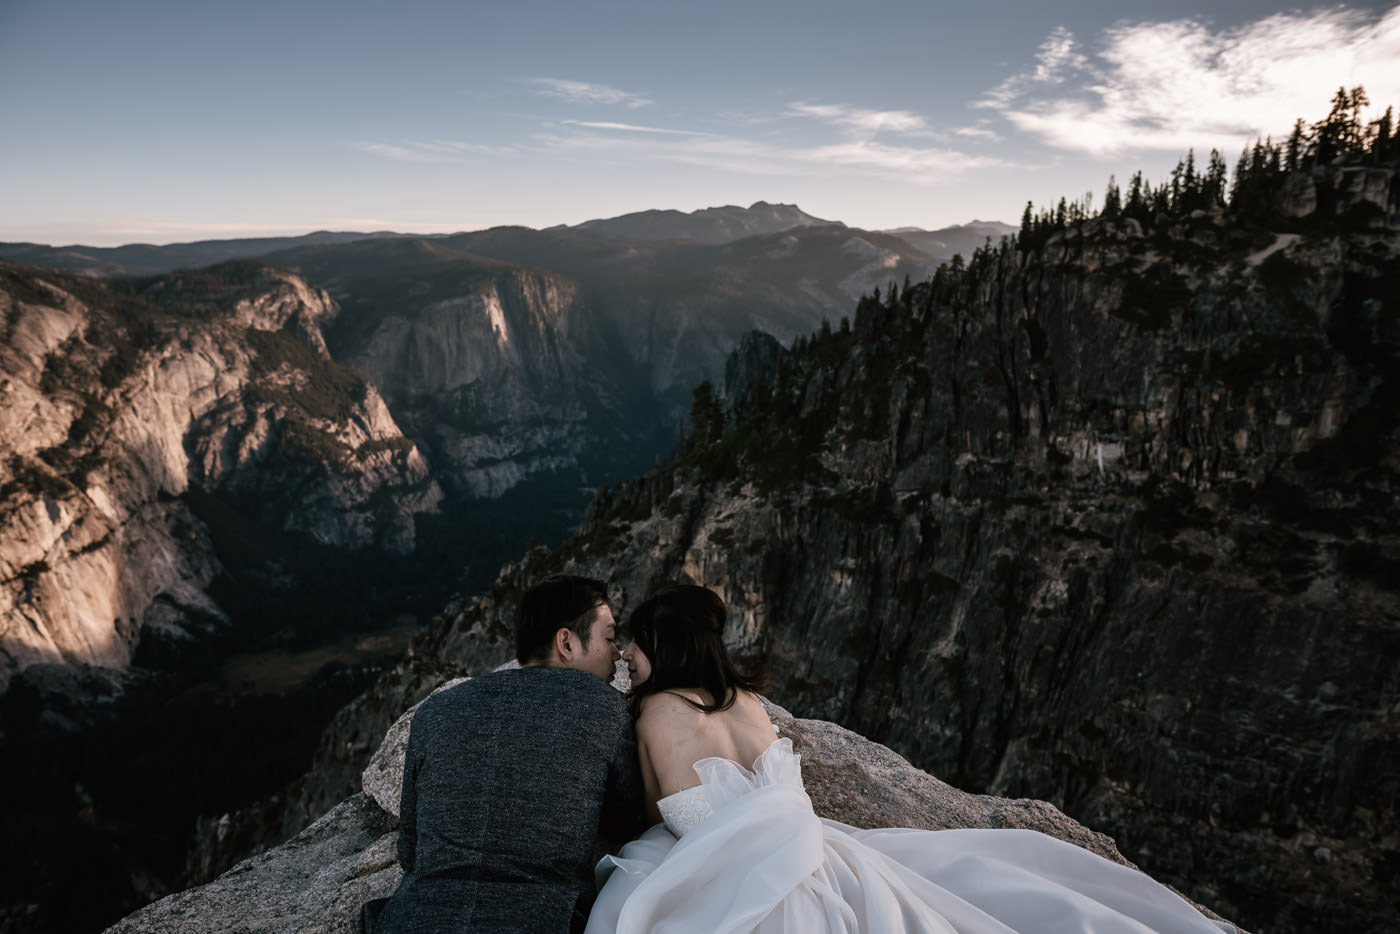 Yosemite adventures for couples in love.